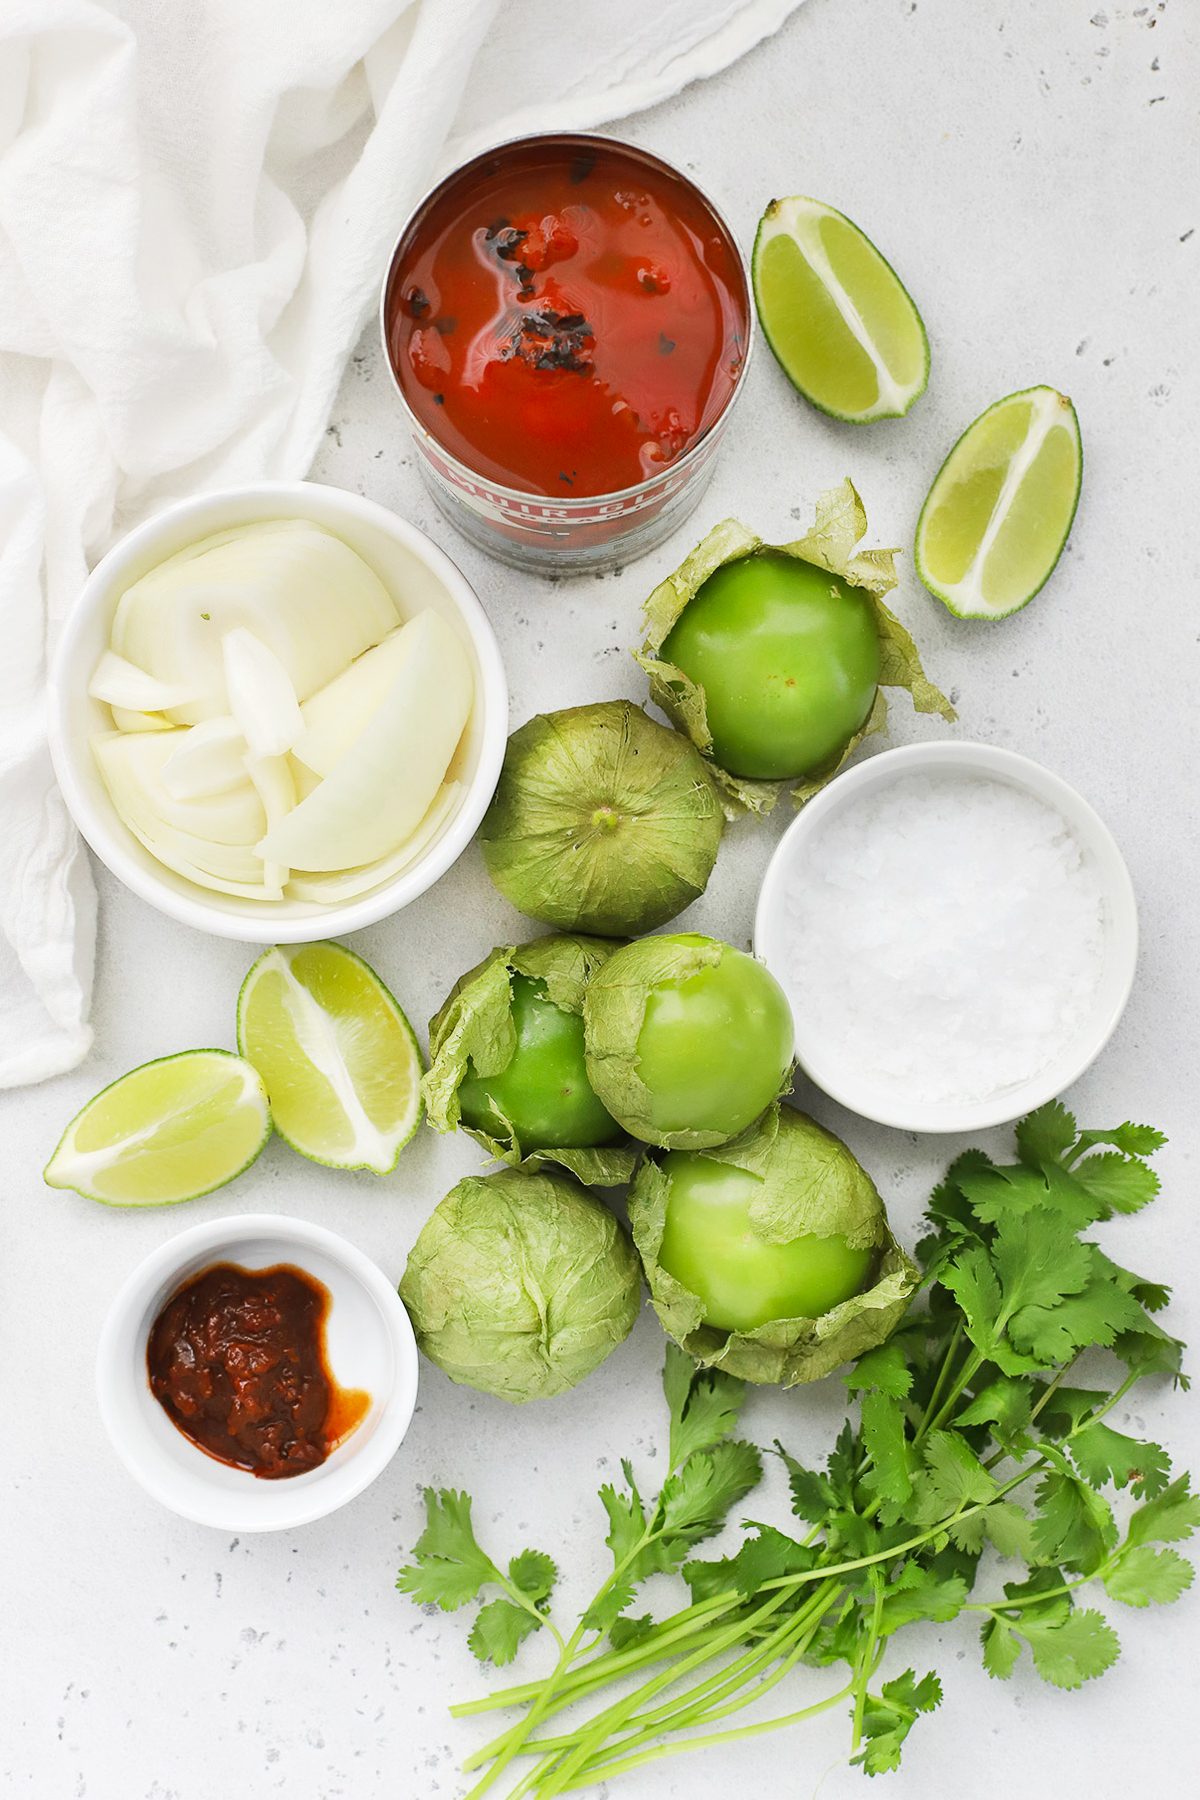 Overhead view of ingredients for chipotle salsa